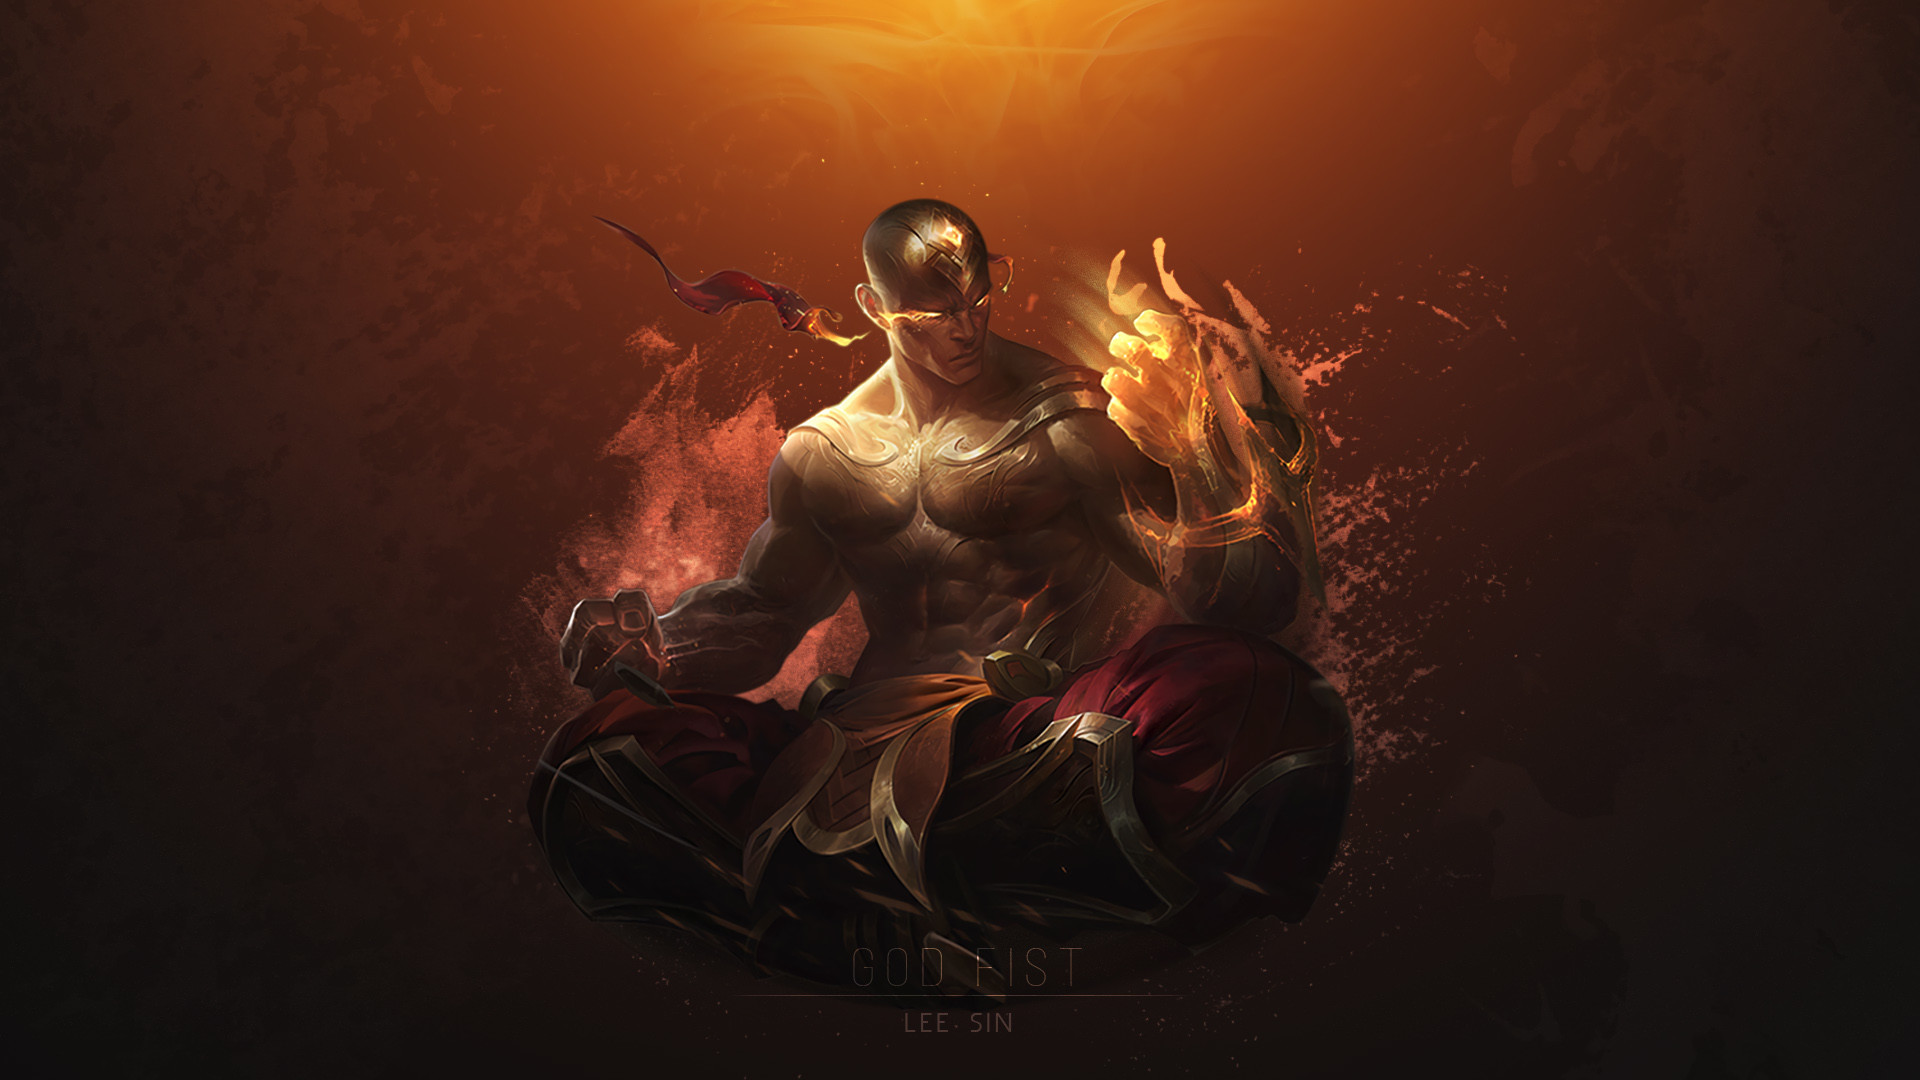 Lee Sin Wallpapers 83 images 1920x1080